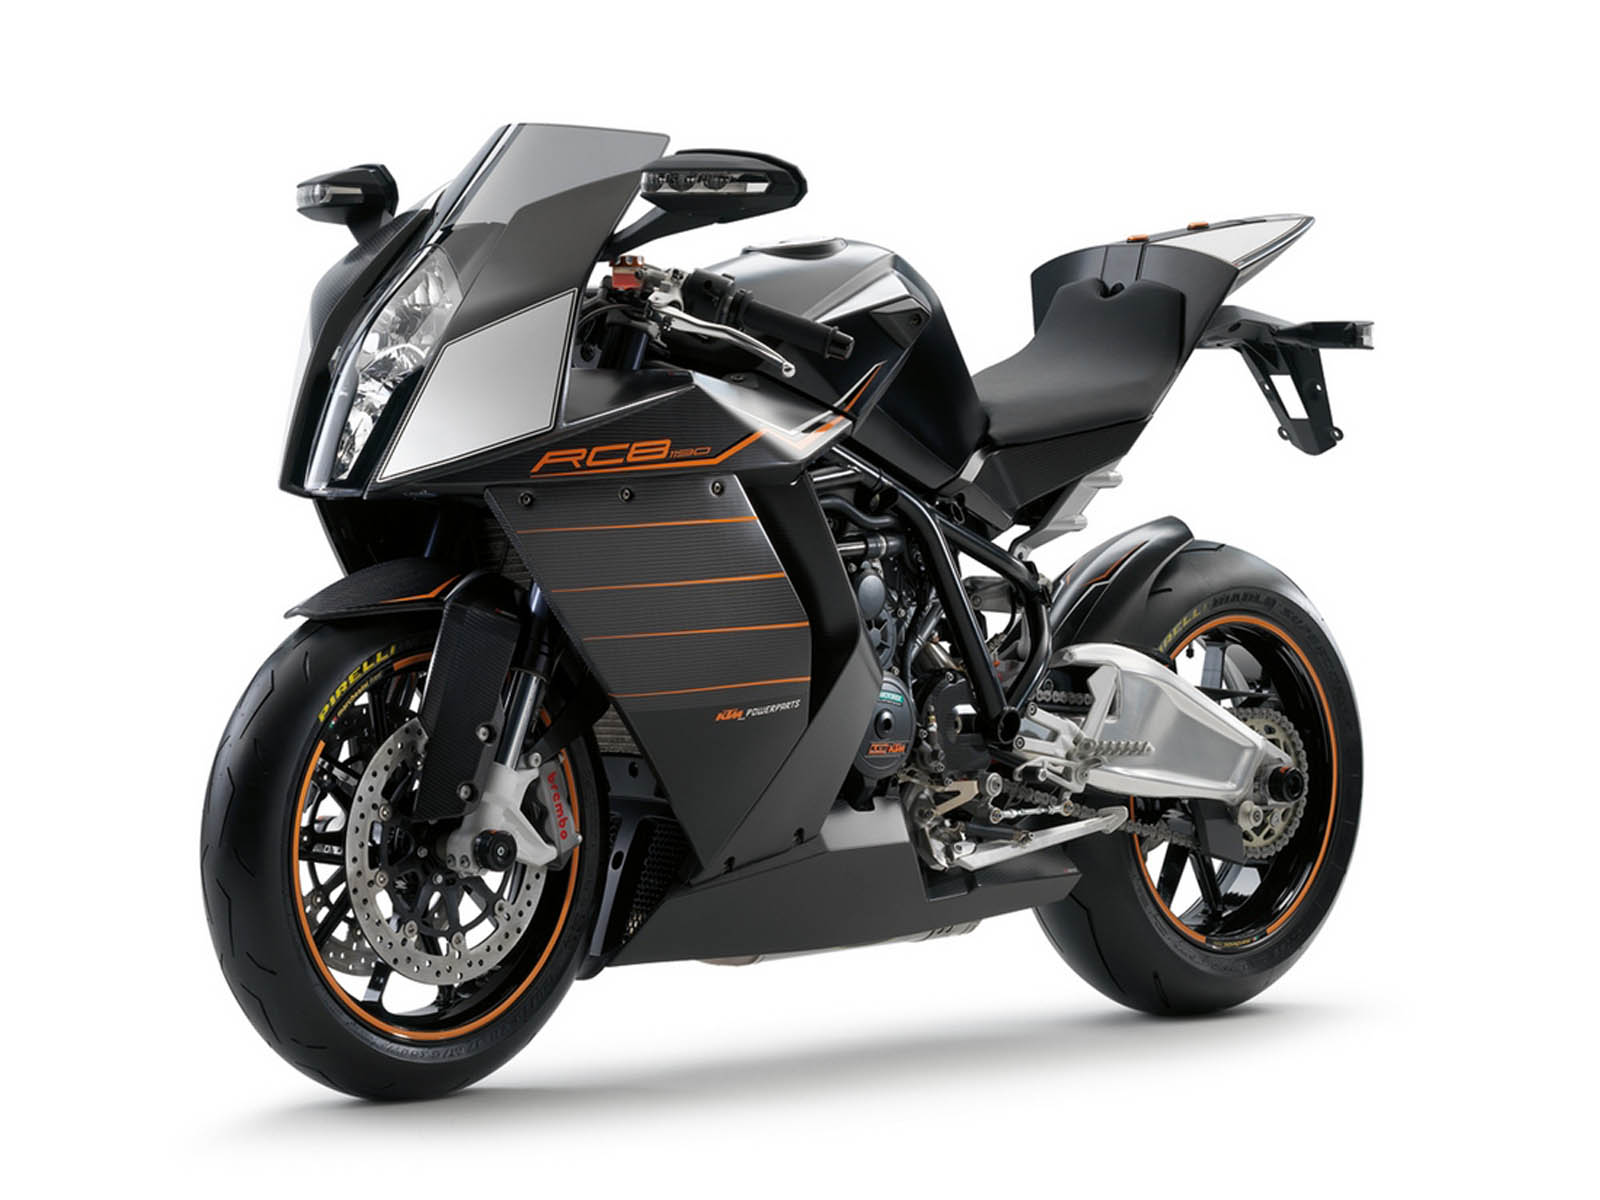 wallpapers ktm rc8 1190 bike wallpapers. Black Bedroom Furniture Sets. Home Design Ideas